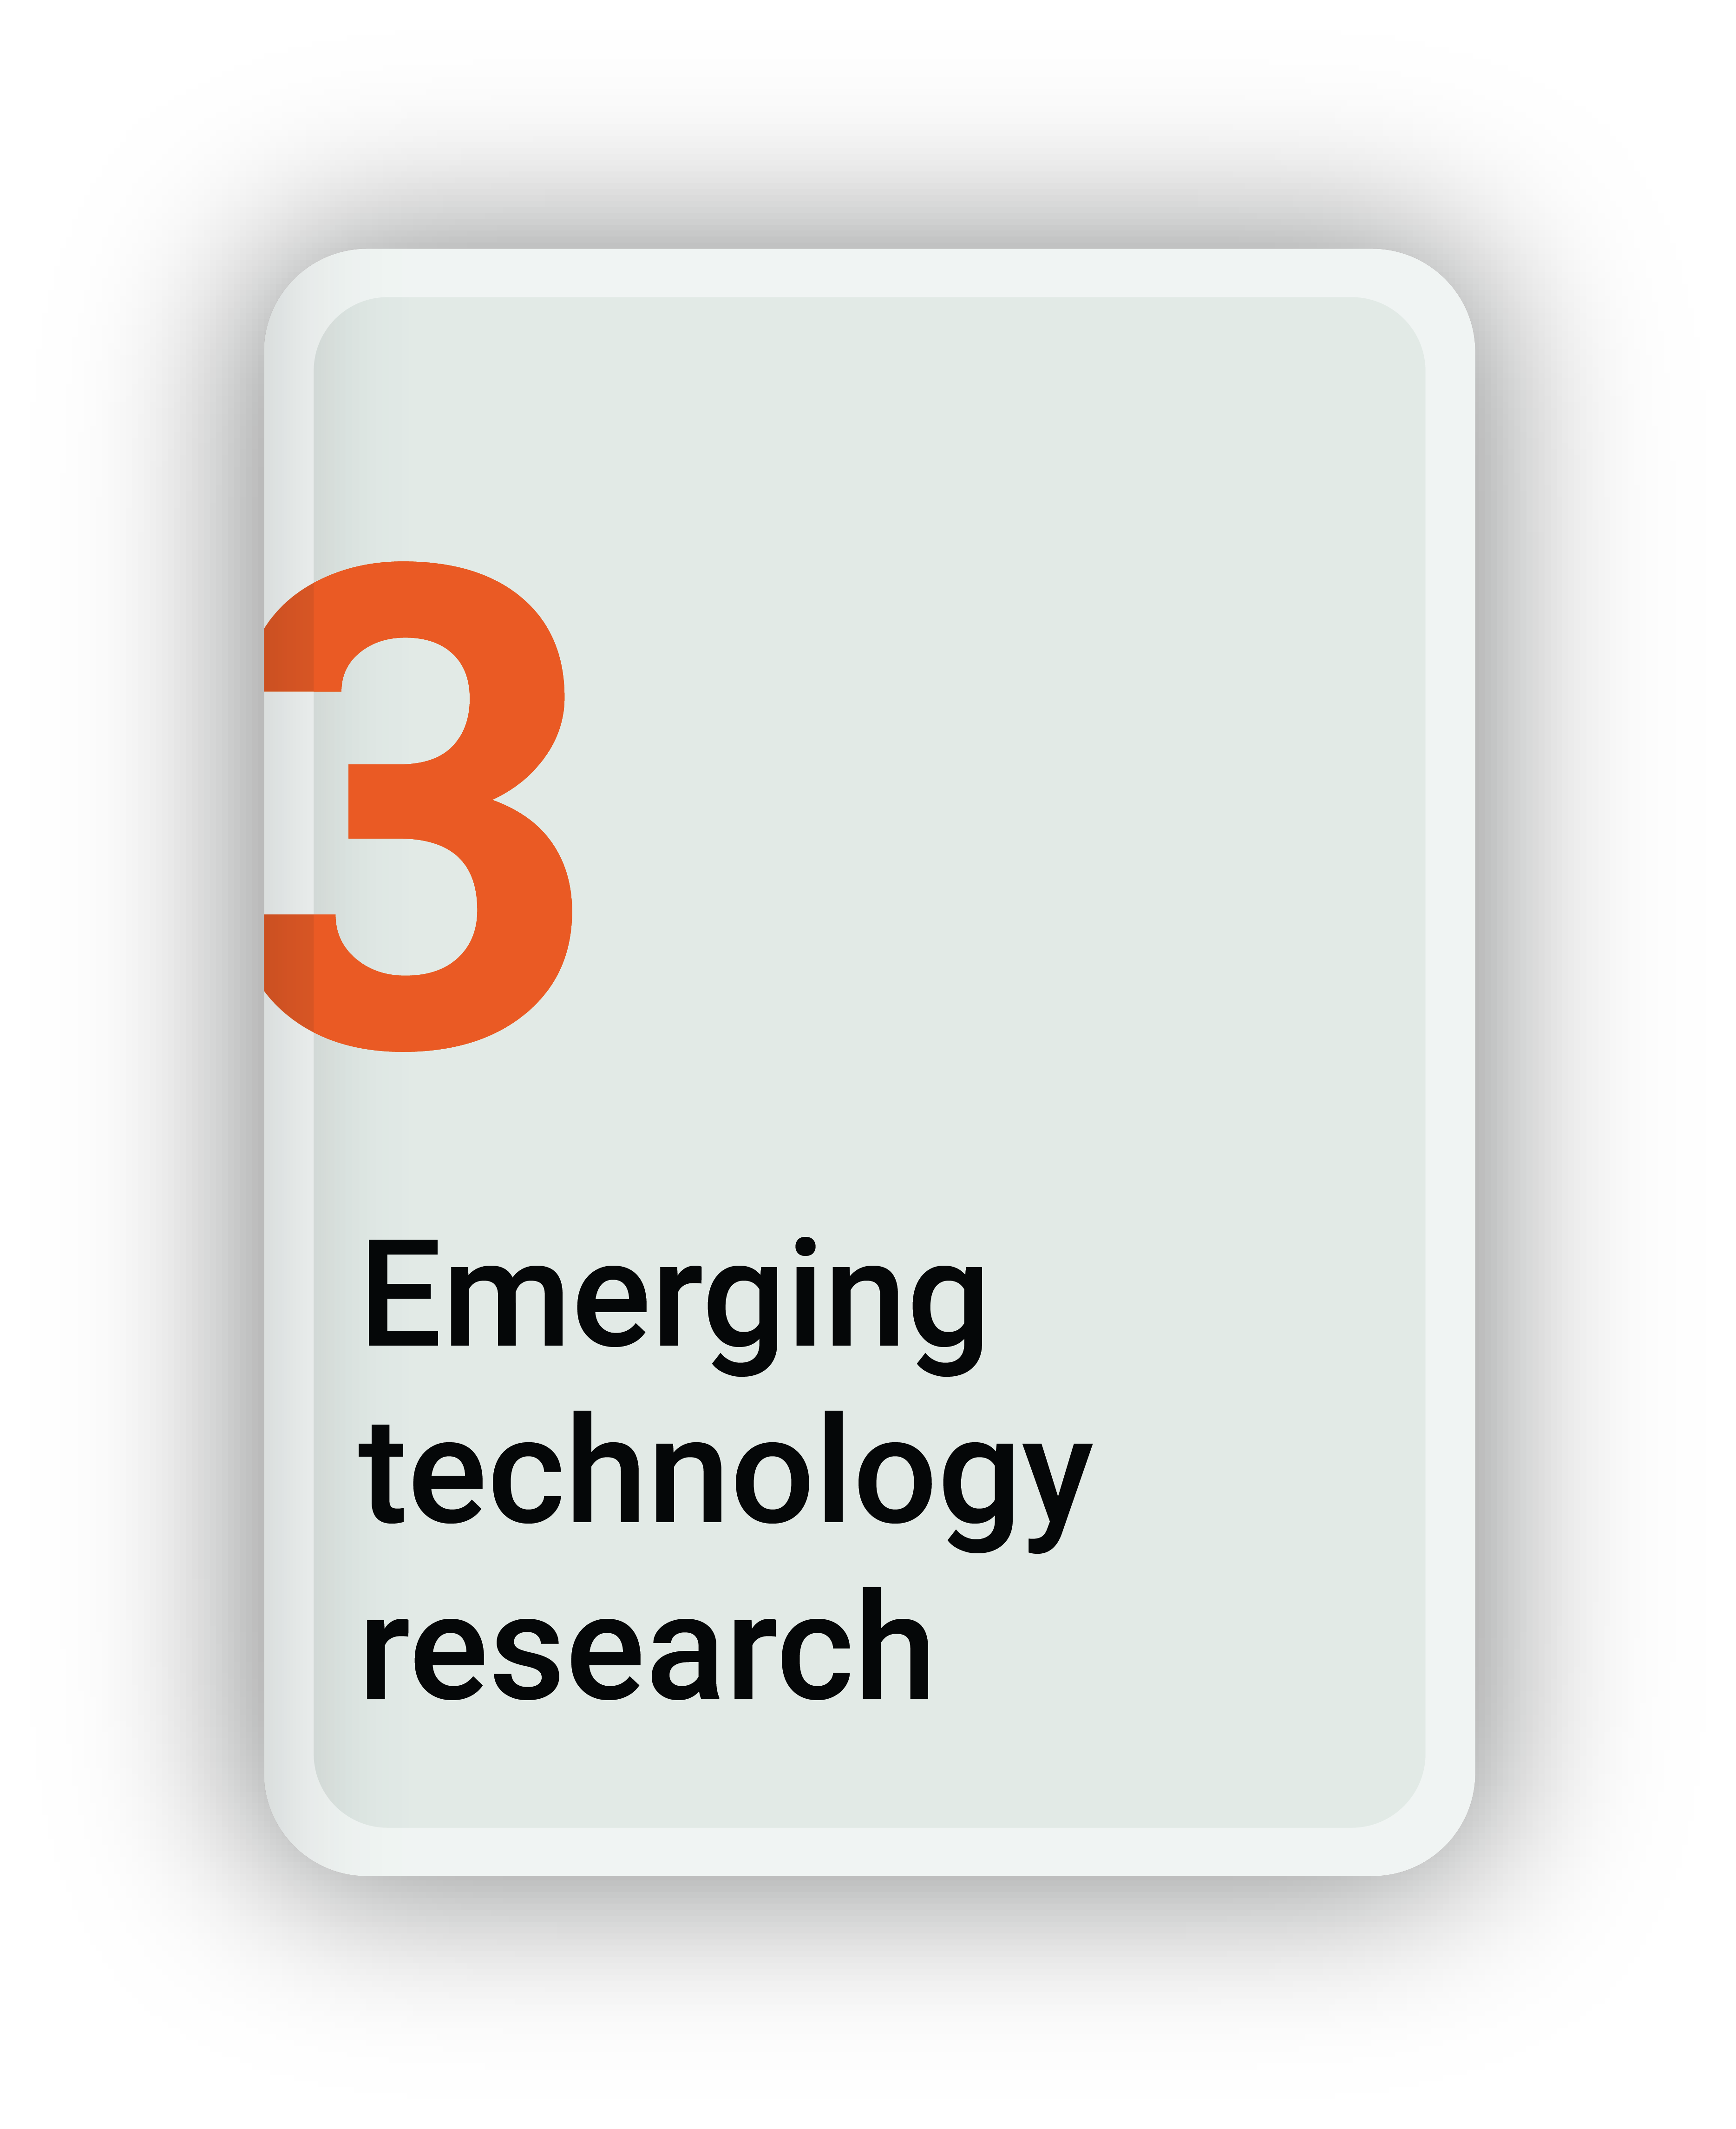 emerging technology research